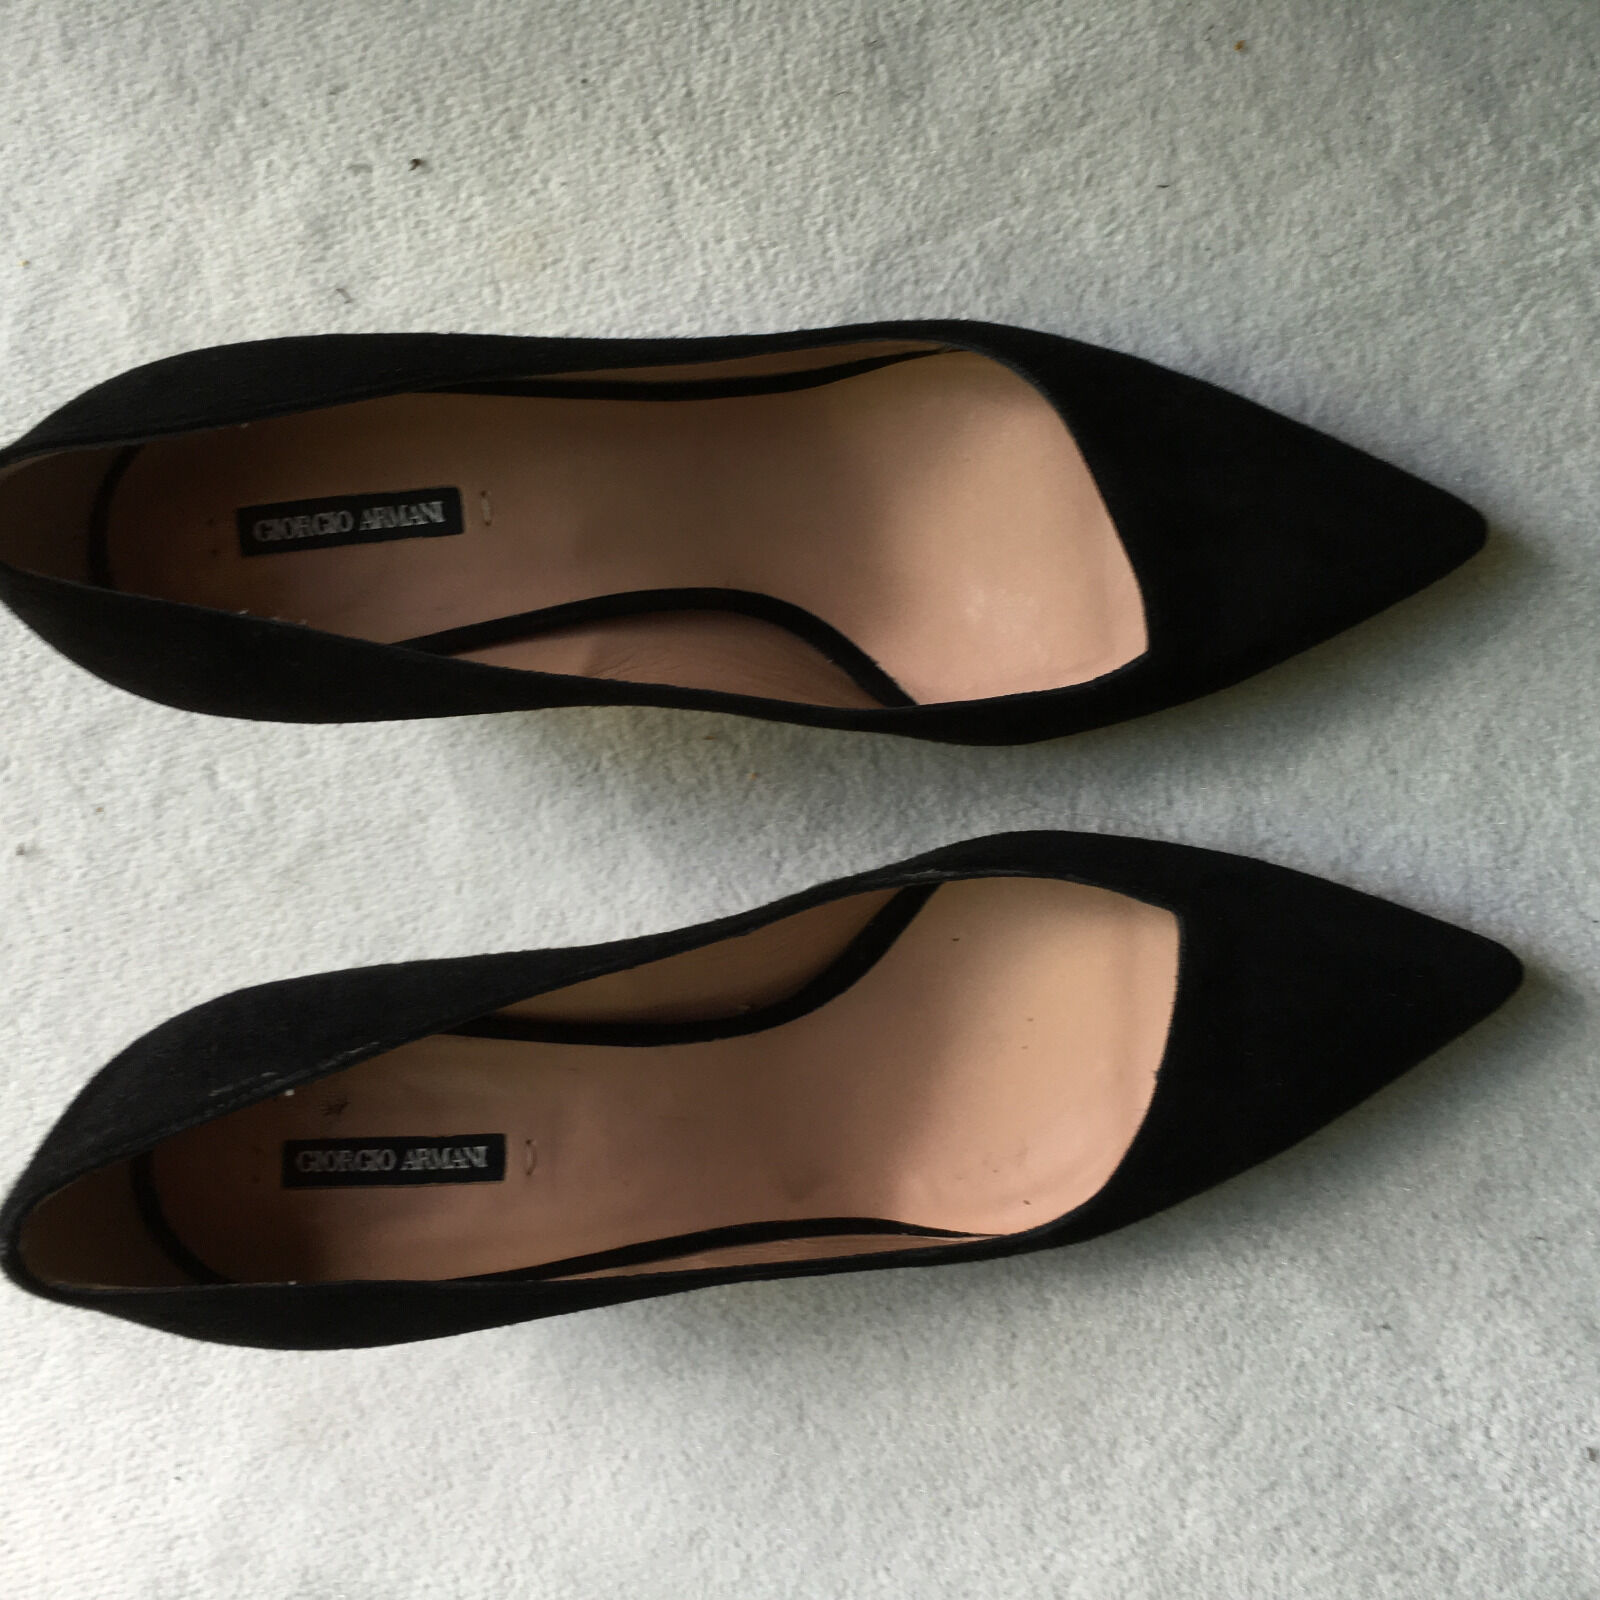 GiORGIO ARMANI - PUMPS  - feinstes Lammveloursleder,Gr. 37,NP 595,-